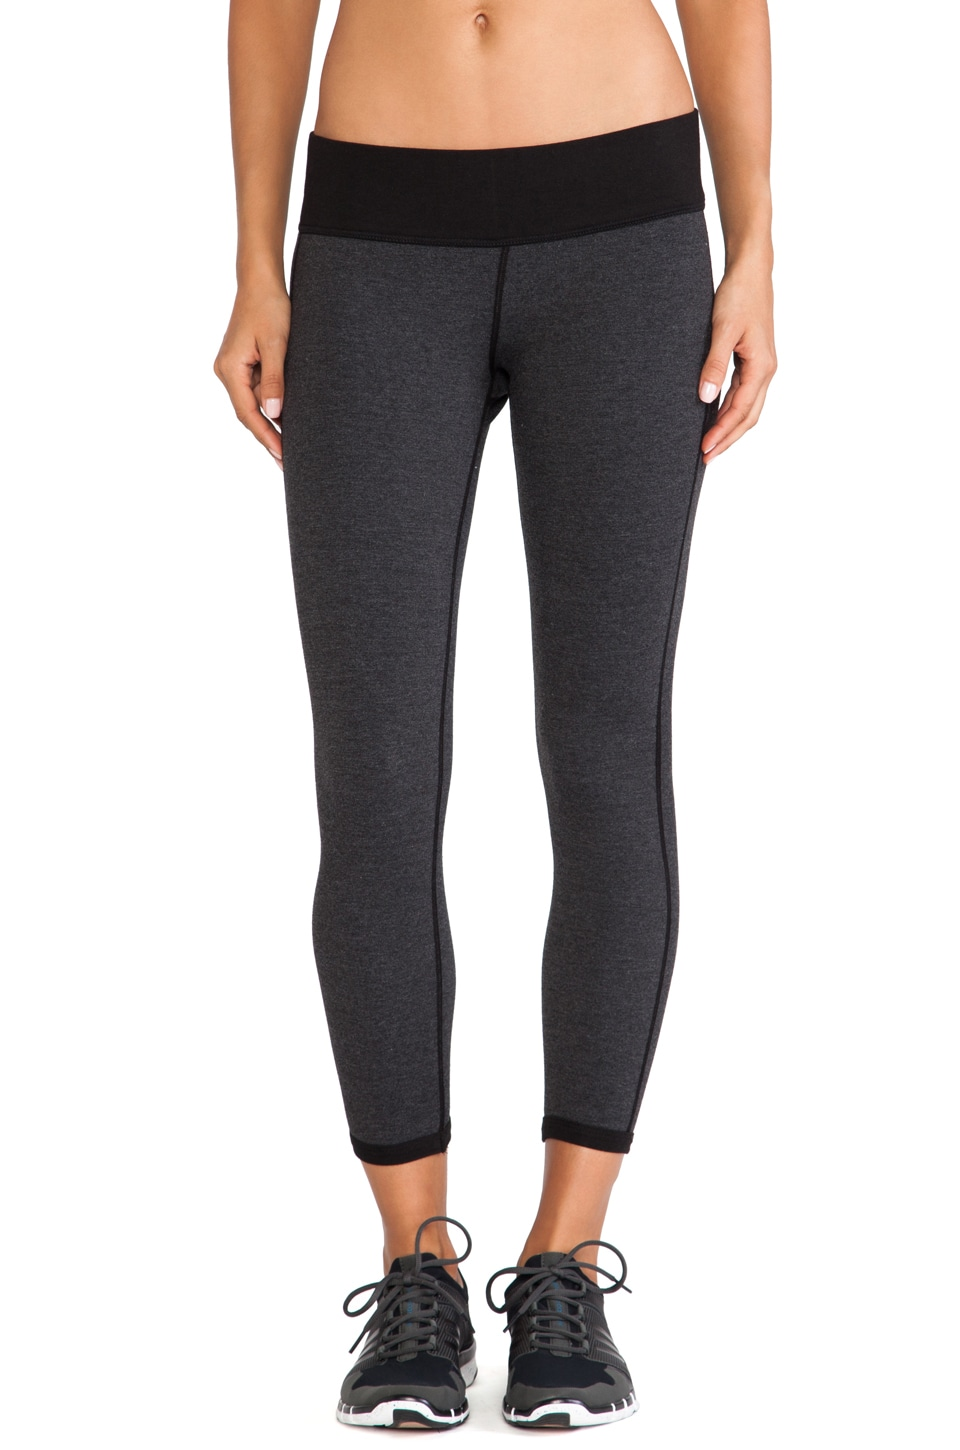 James Perse Contrast Yoga Capri in Black